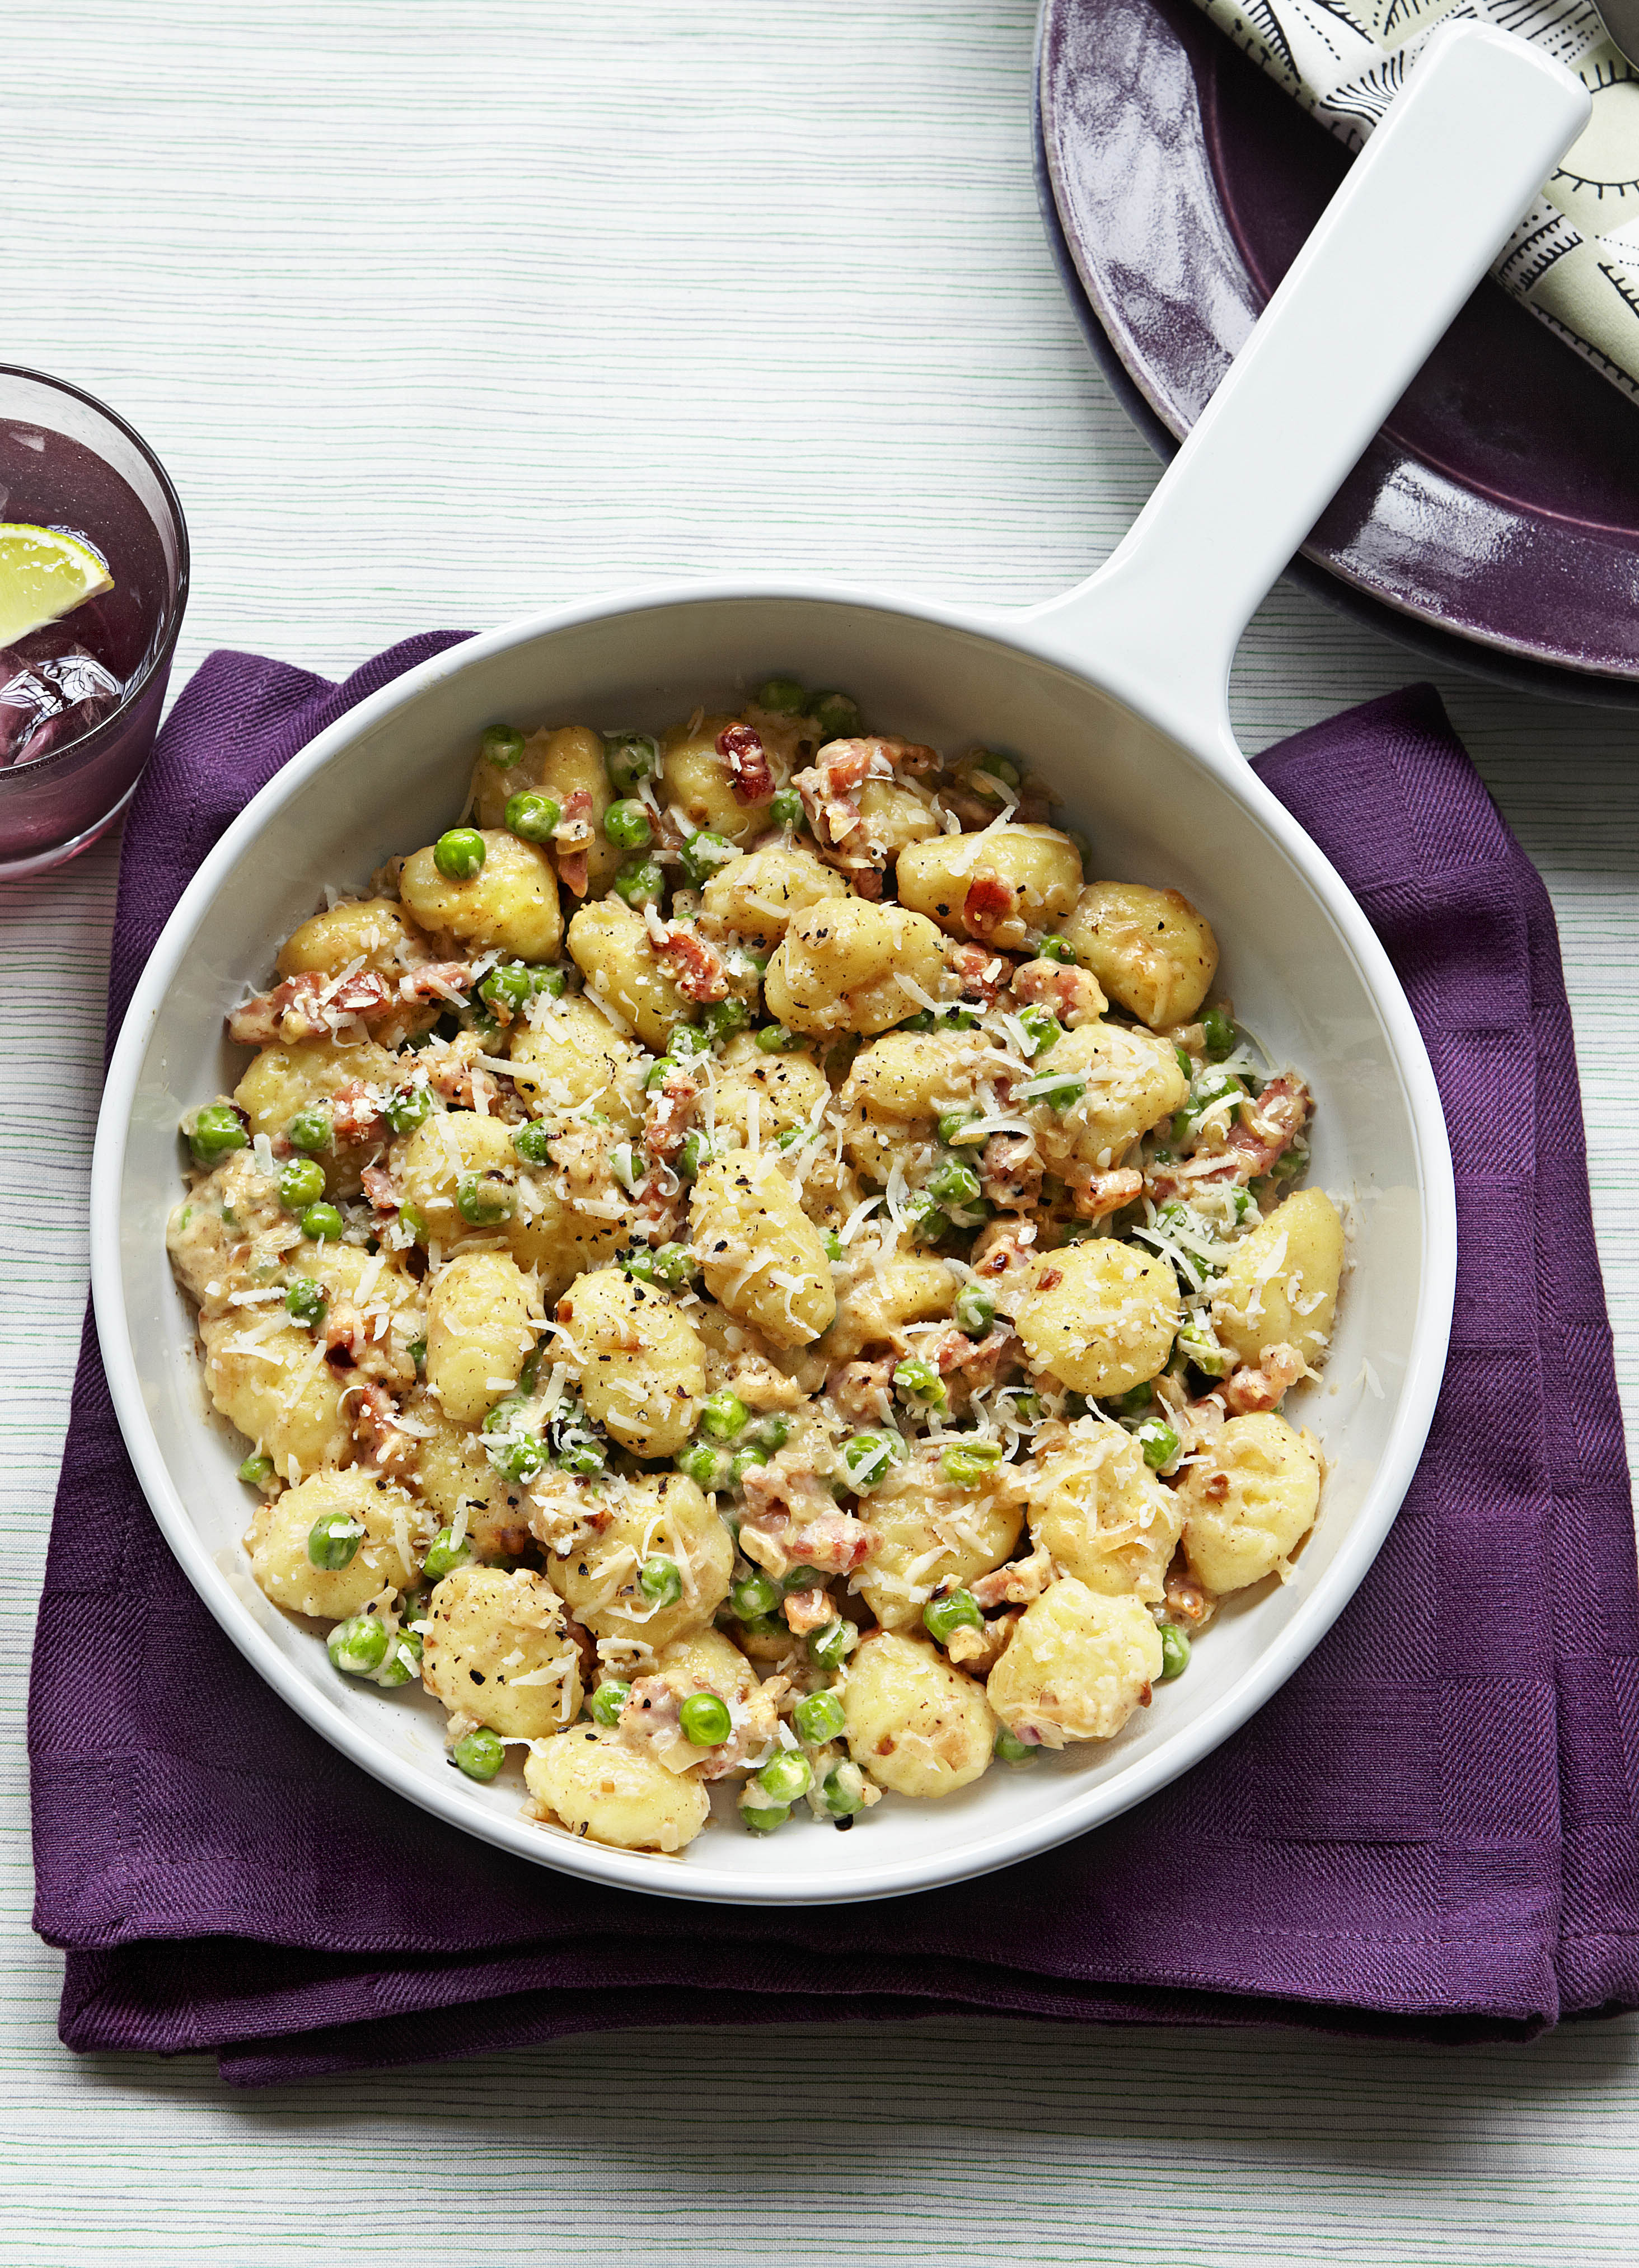 Gnocchi with peas and pancetta